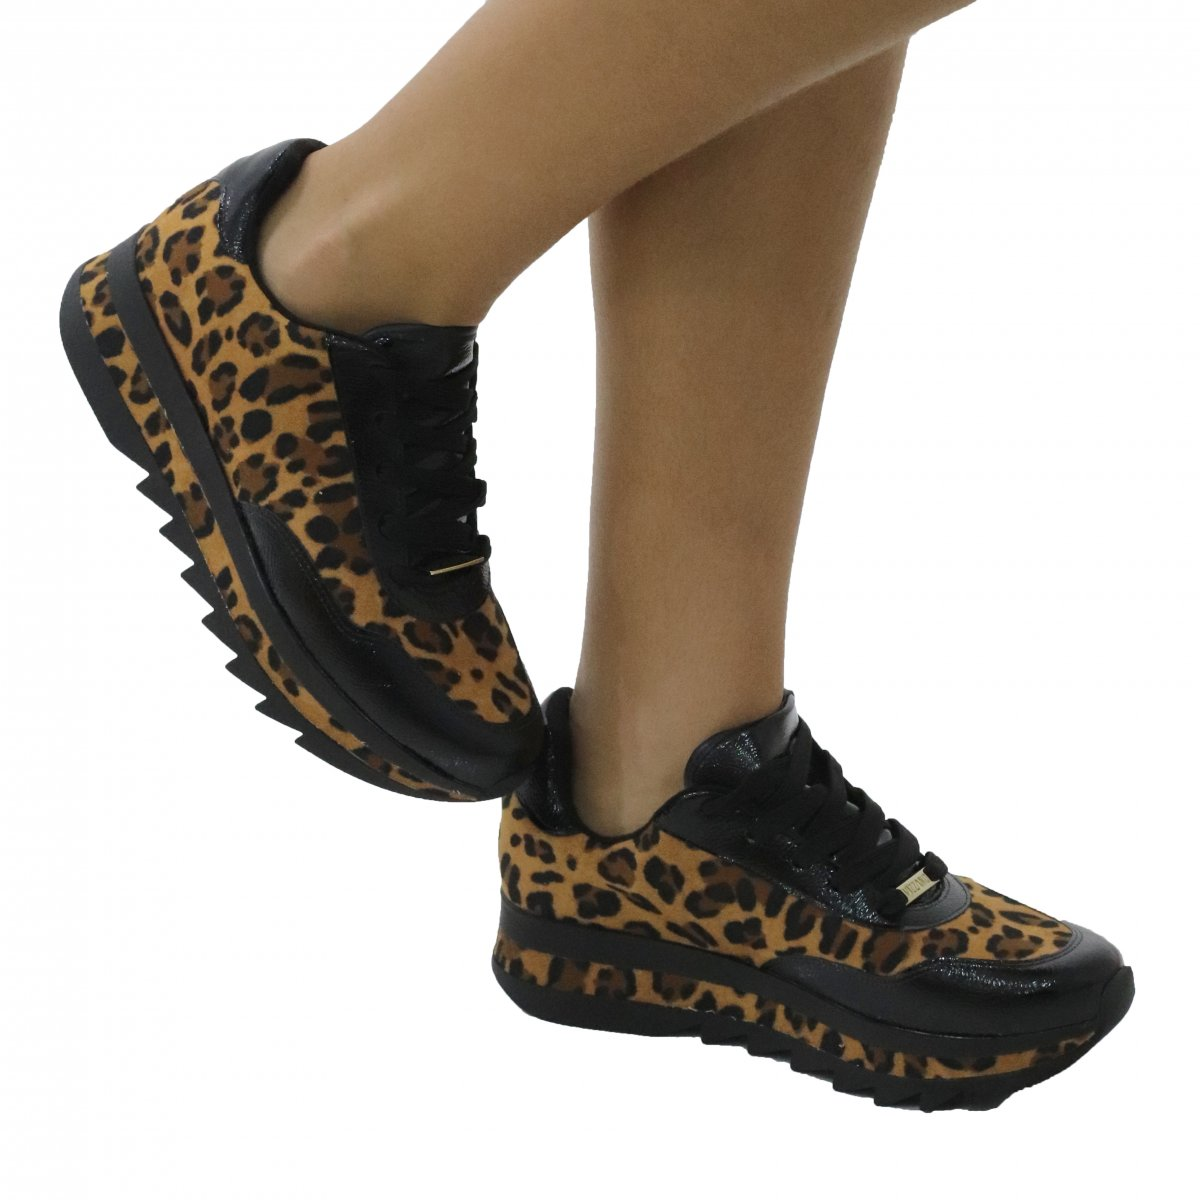 91e845fac8 Tênis Feminino Casual Animal Print Jogging Vizzano Animal Print - MM Concept